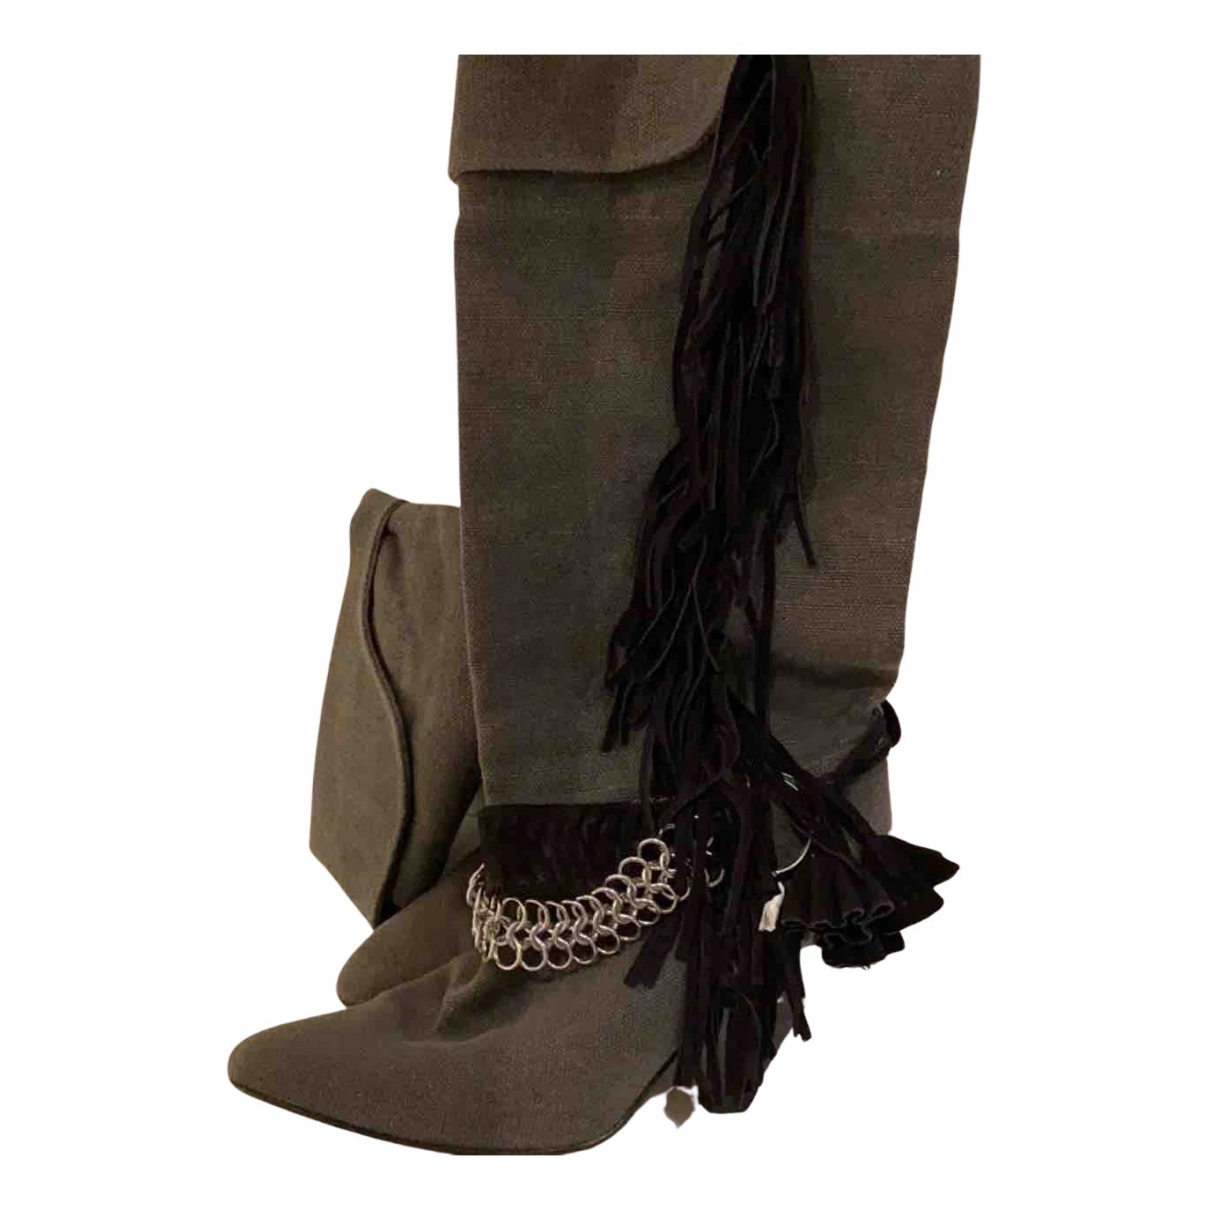 Isabel Marant N Khaki Suede Boots for Women 38 EU